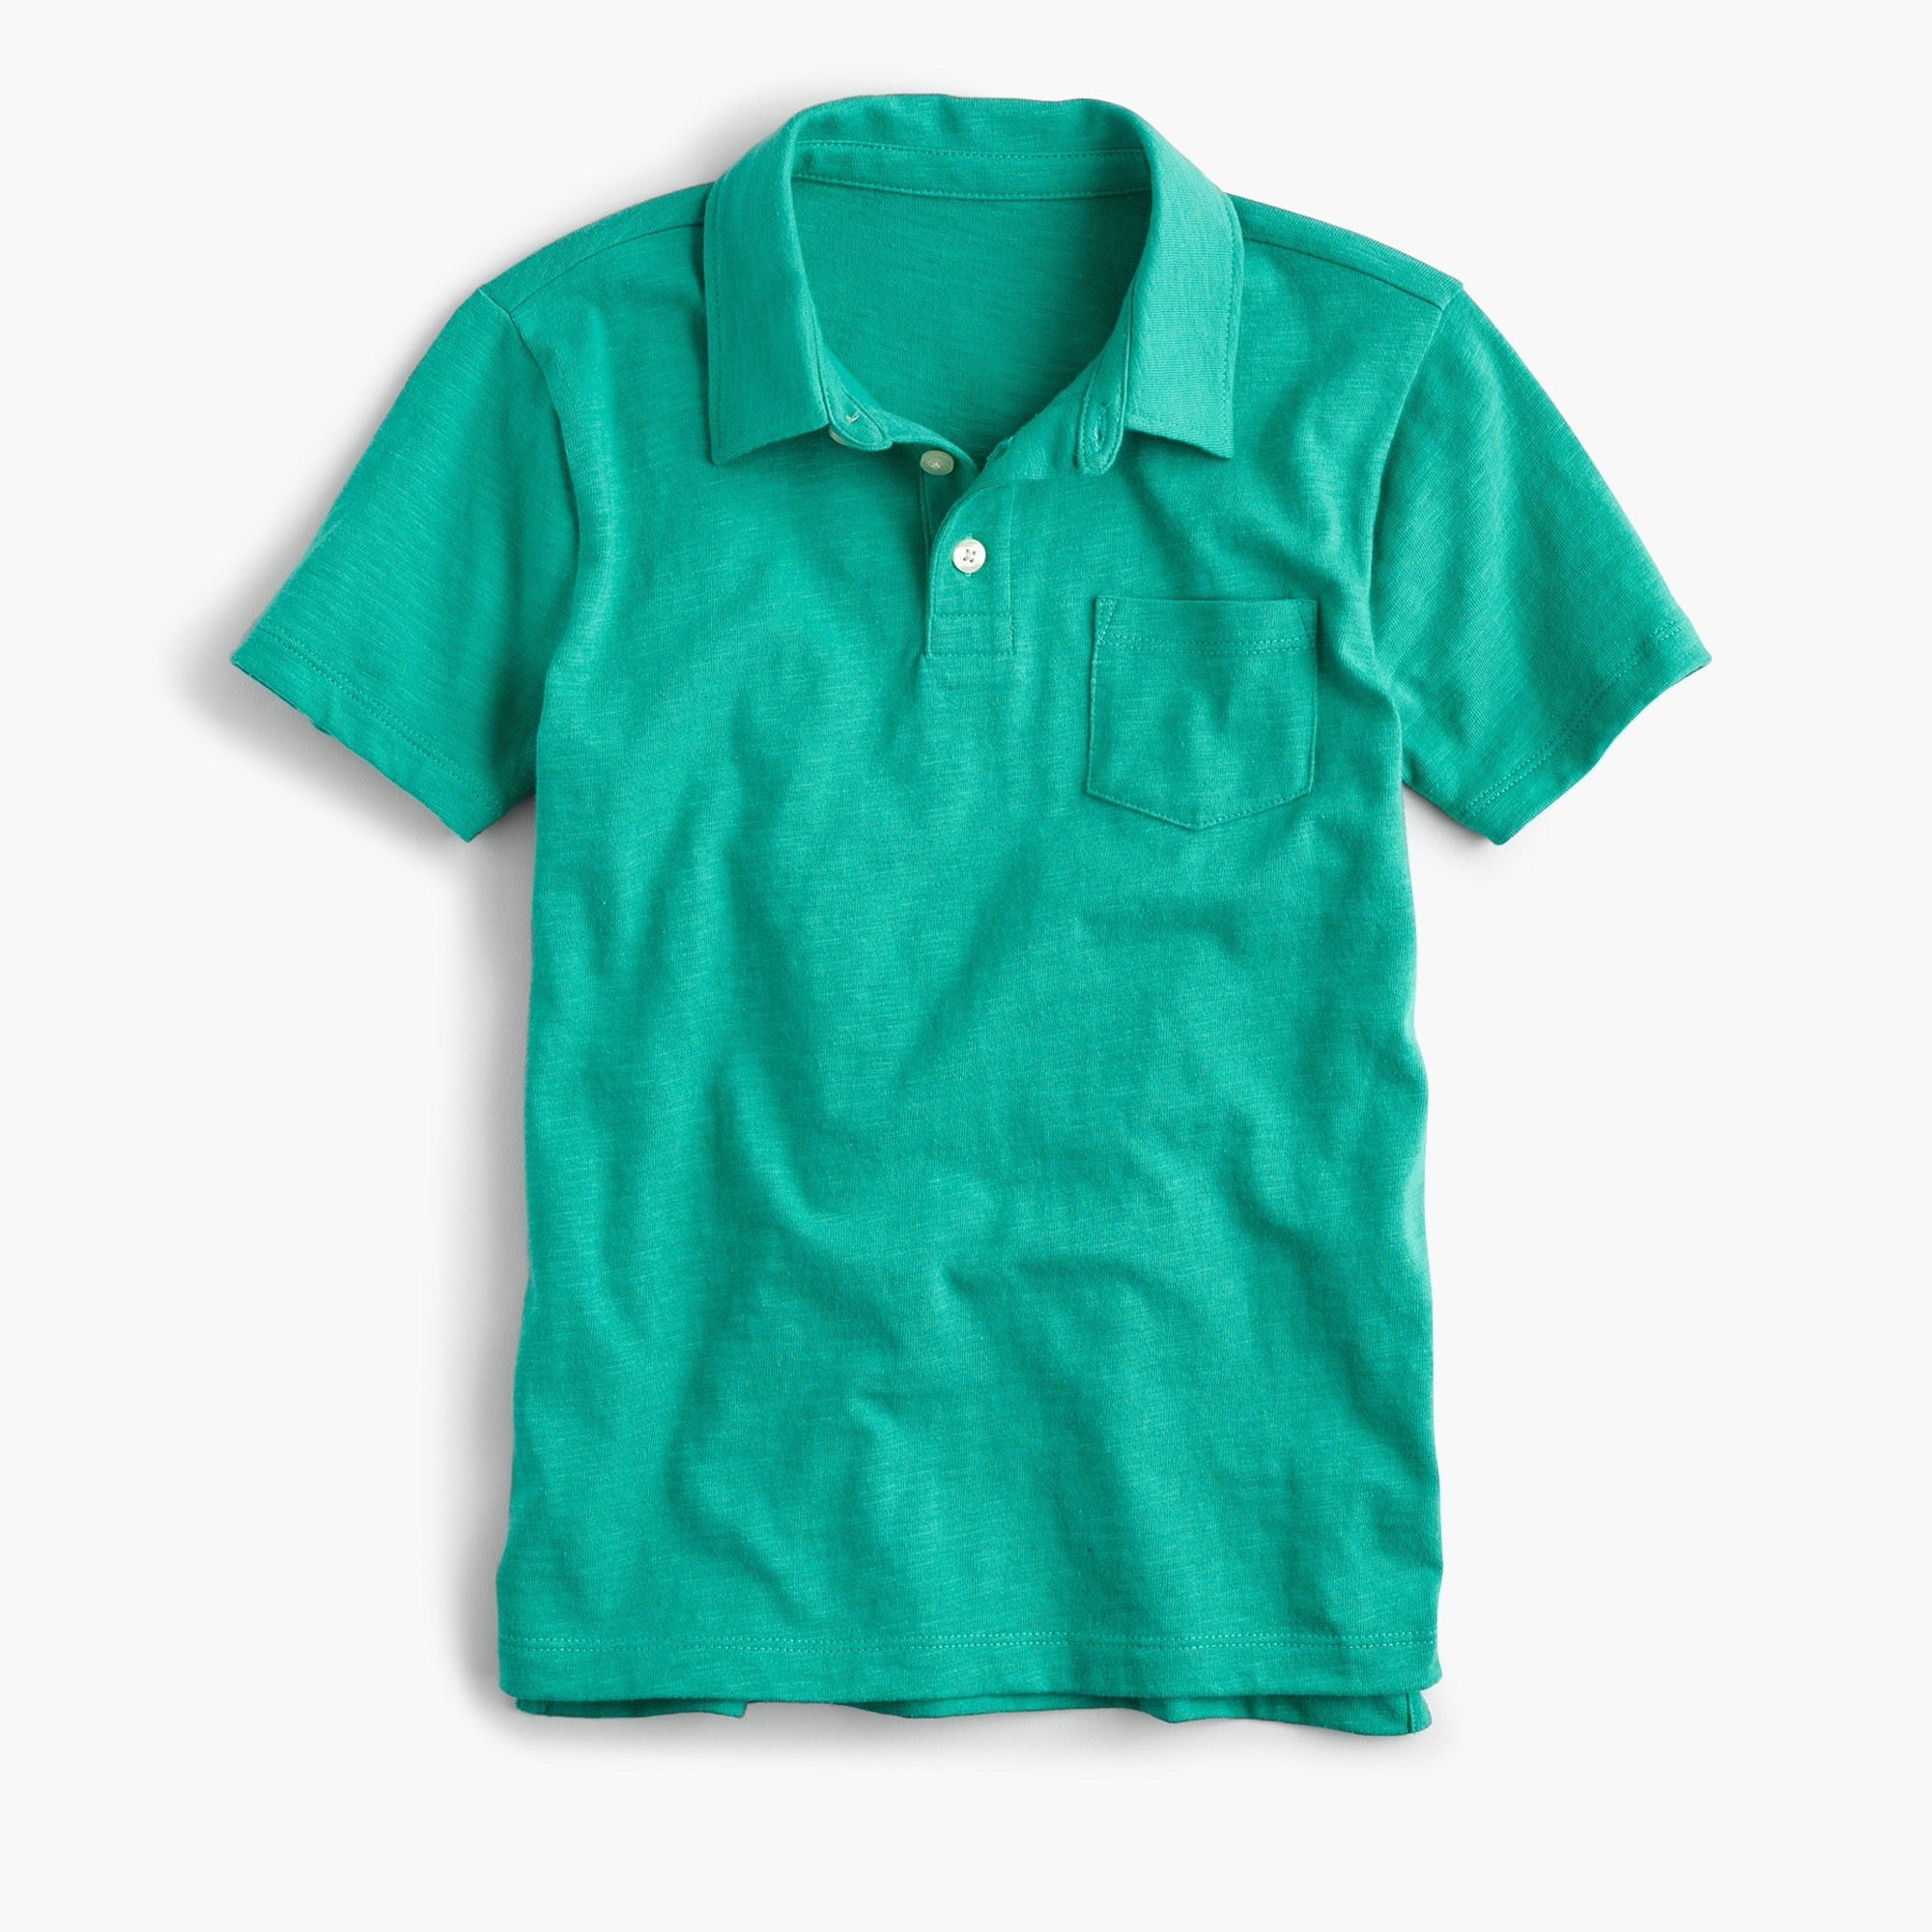 Boys' slub cotton polo shirt boy new arrivals c